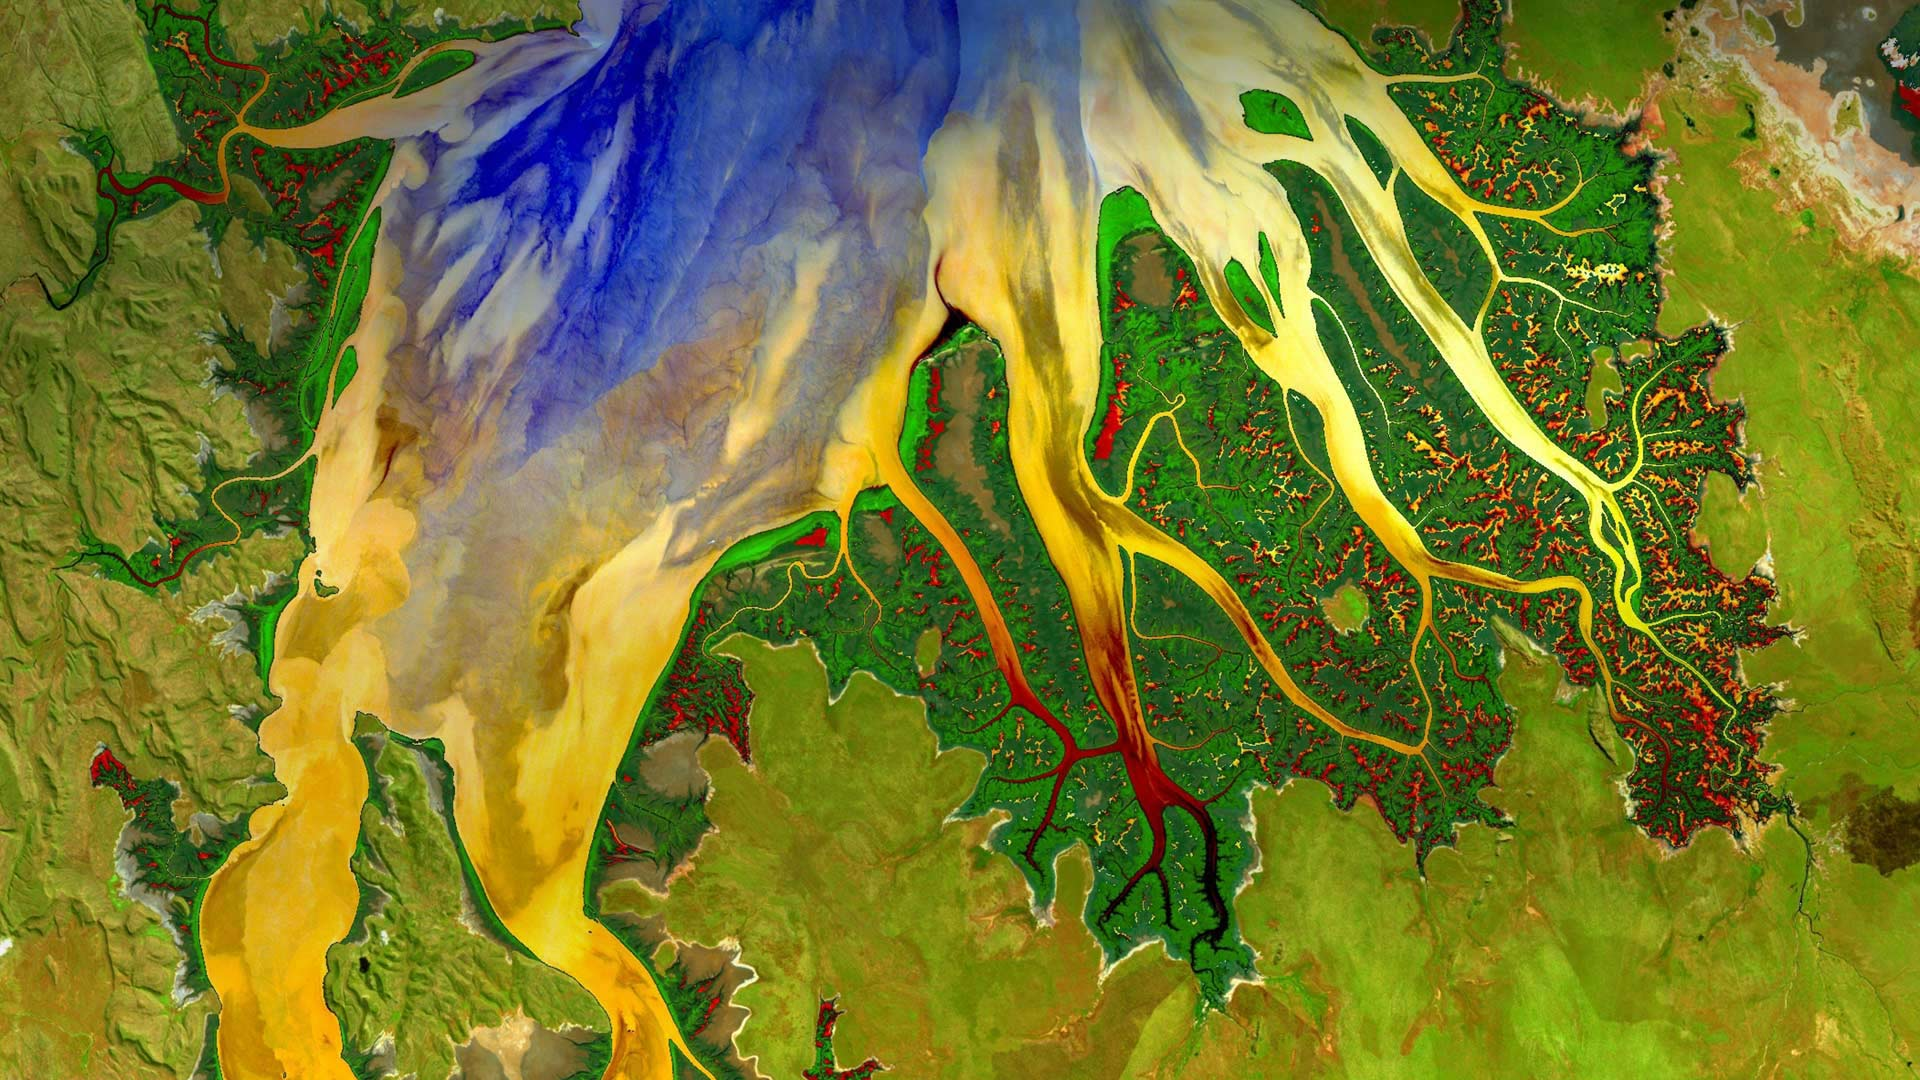 Cambridge Gulf and estuary in Western Australia photographed by Landsat 8 satellite (© World History Archive/Alamy)